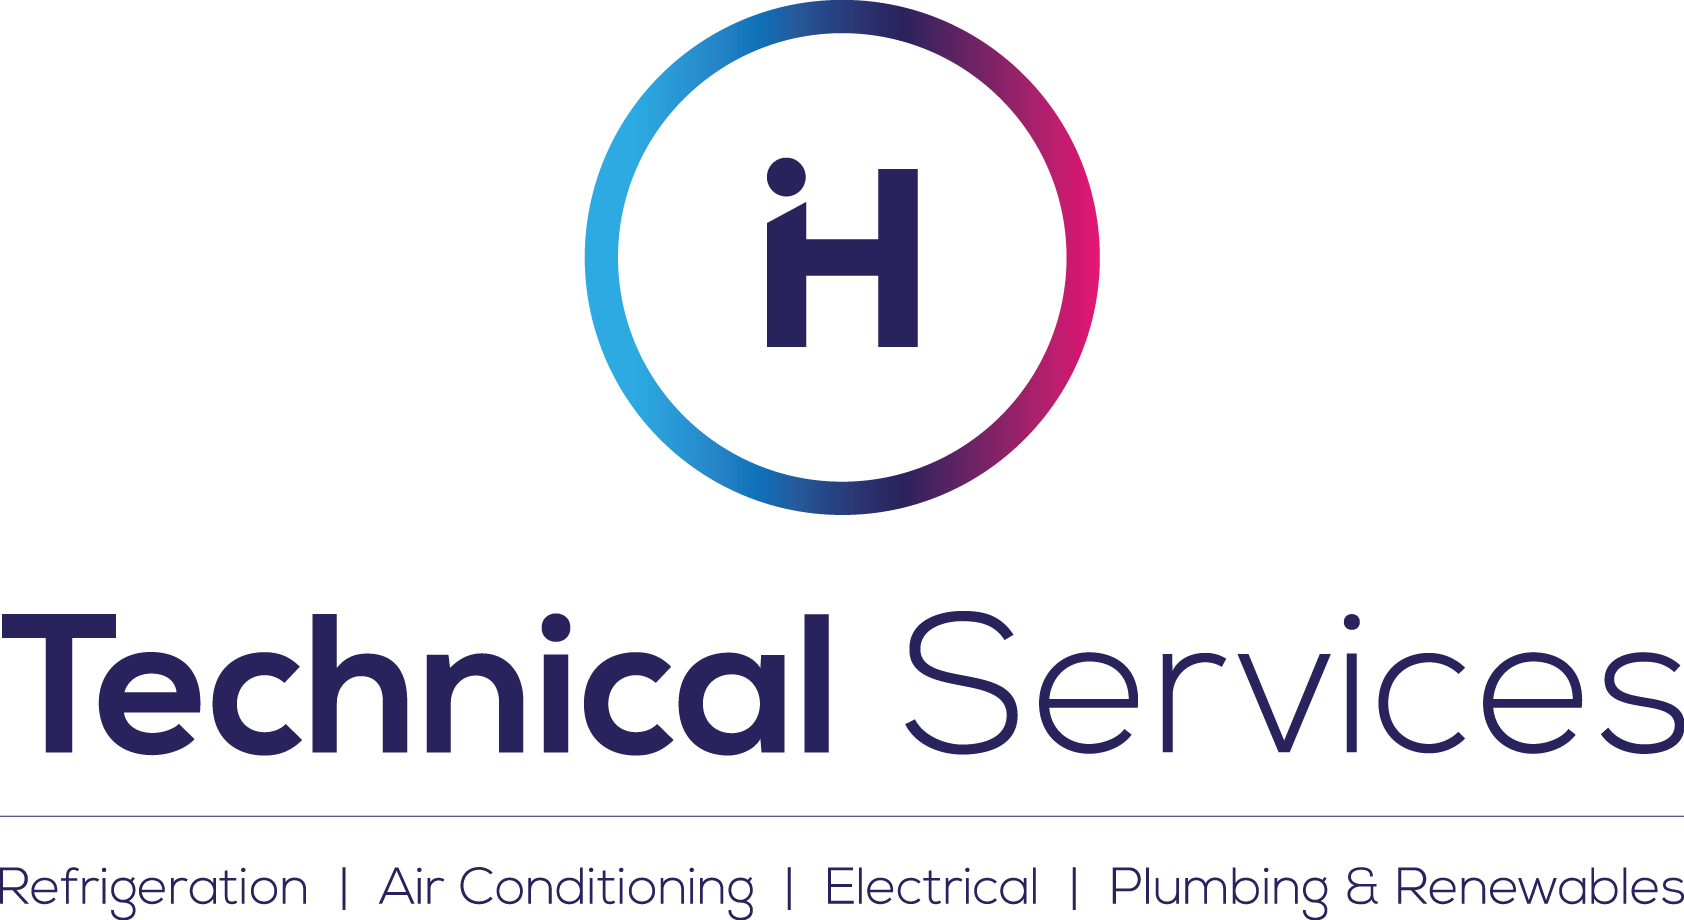 Ian Hobbs Technical Services Limited